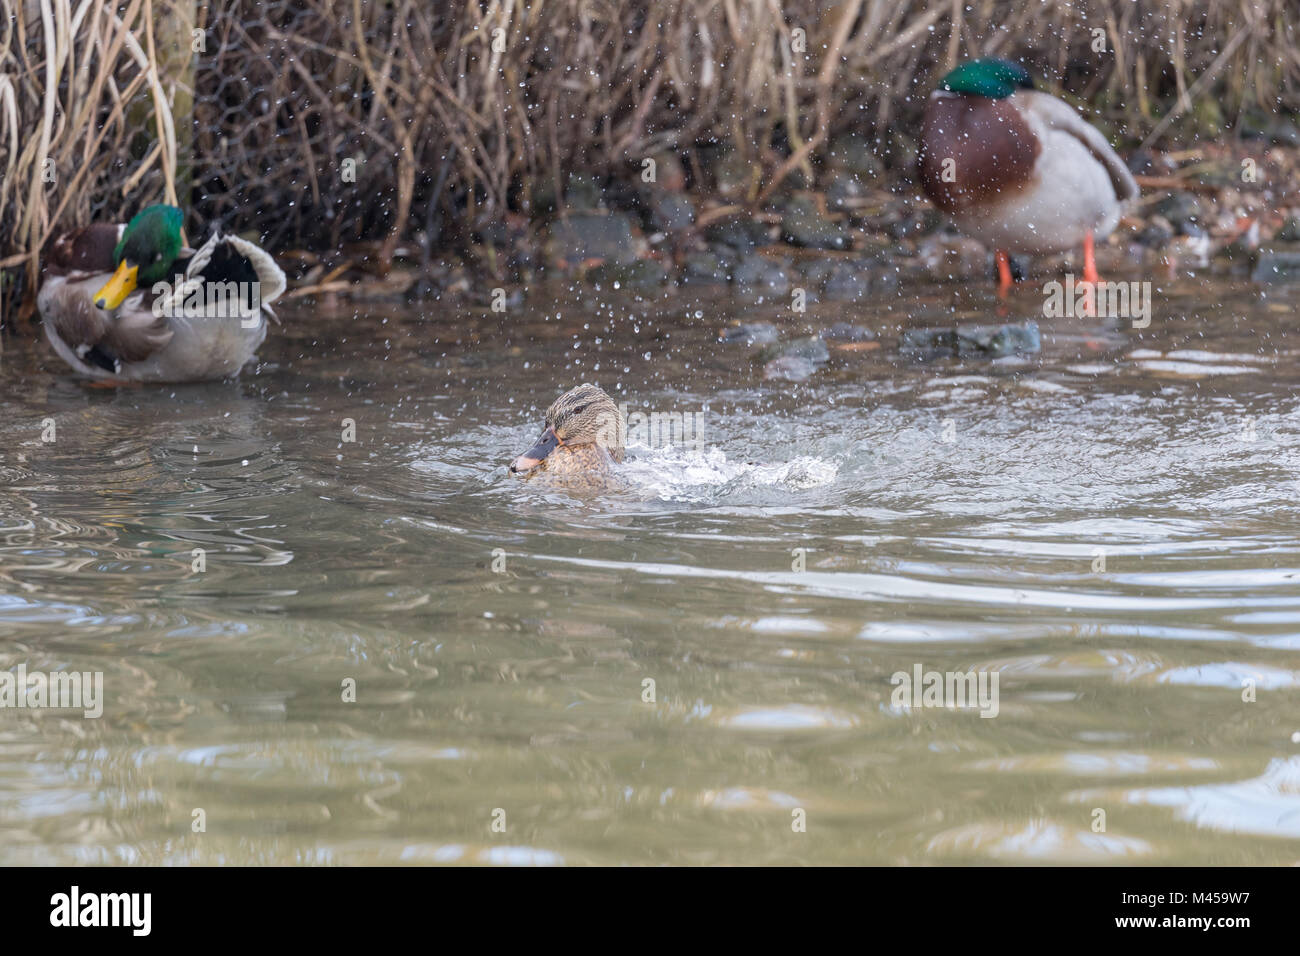 Female mallard (Anas platyrhynchos) splashing in water with two drakes in the background. - Stock Image